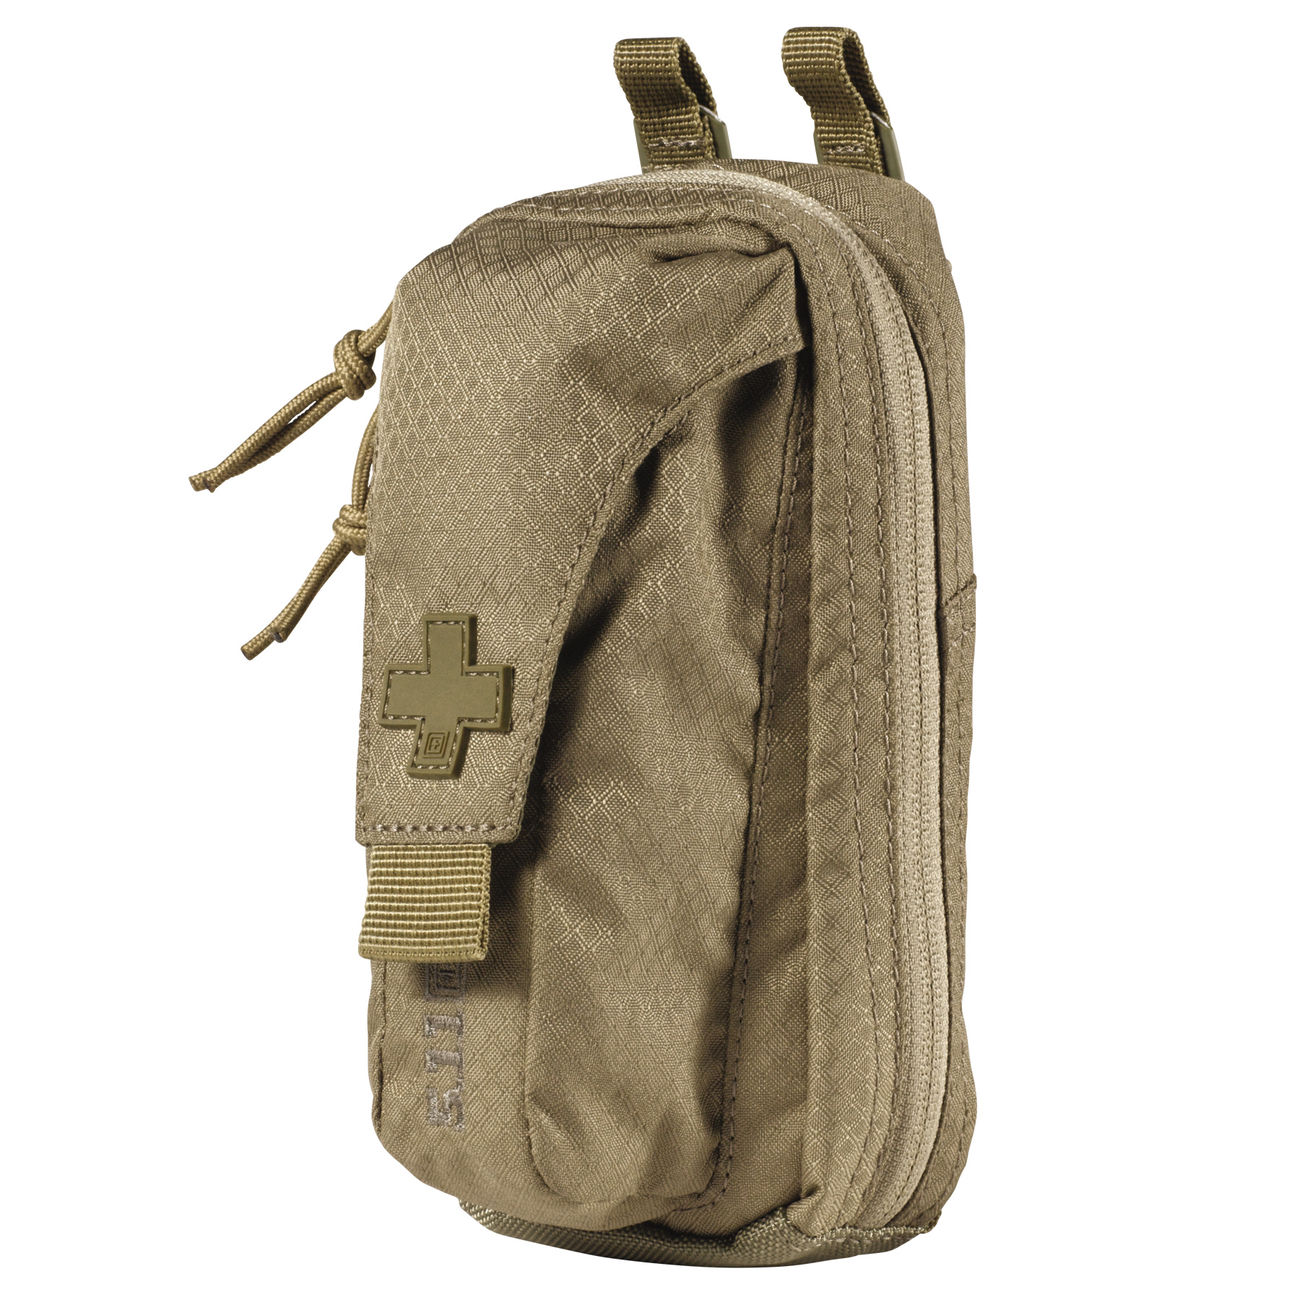 5.11 Ignitor Med Pouch sandstone 0